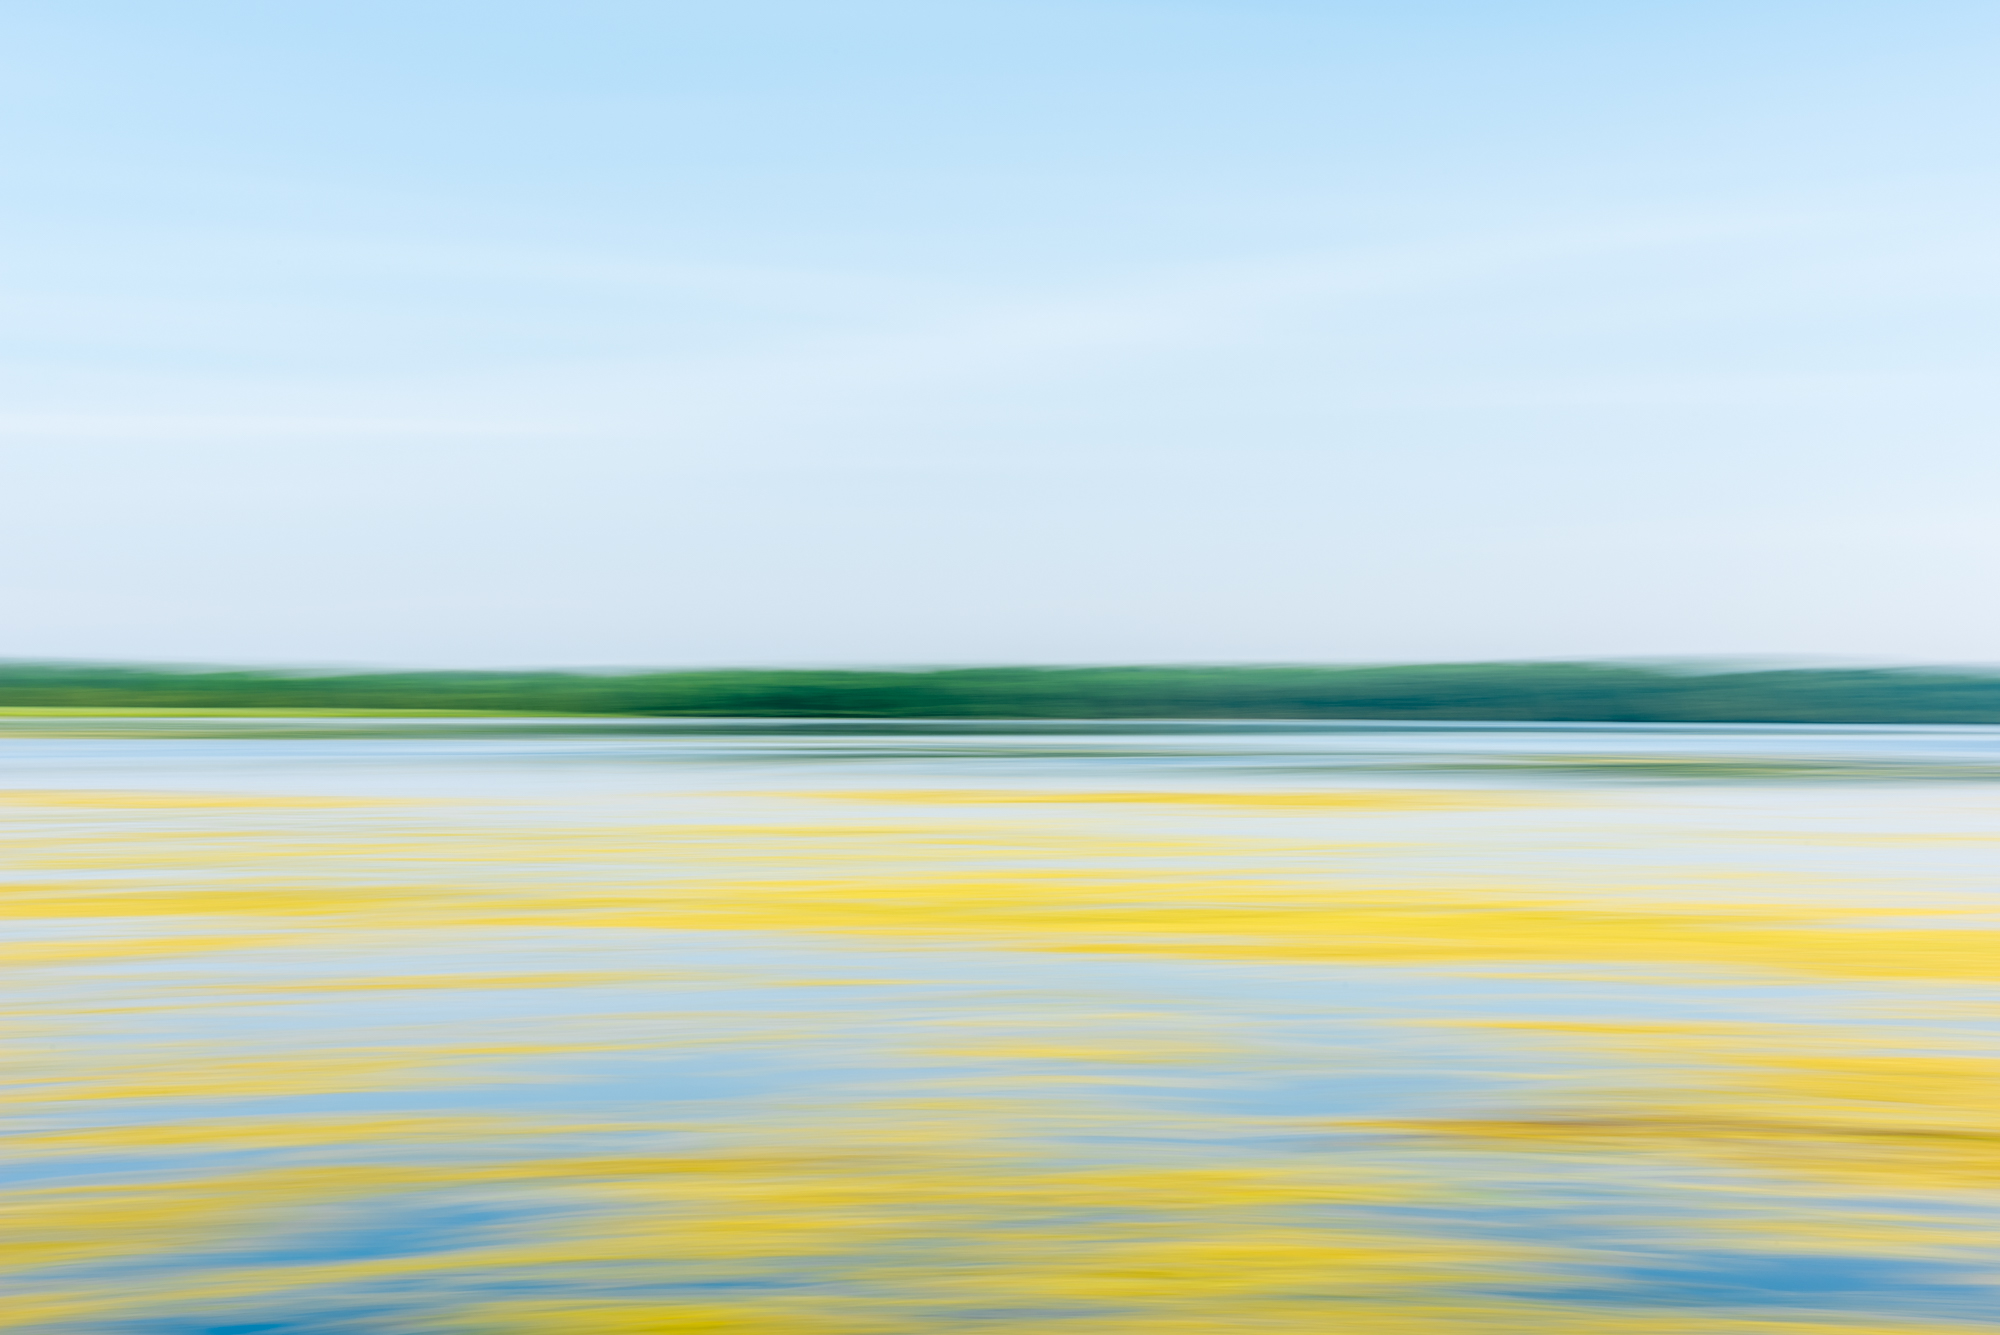 abstract lanscape color photograph of horizon and lake by Jim Kostecky